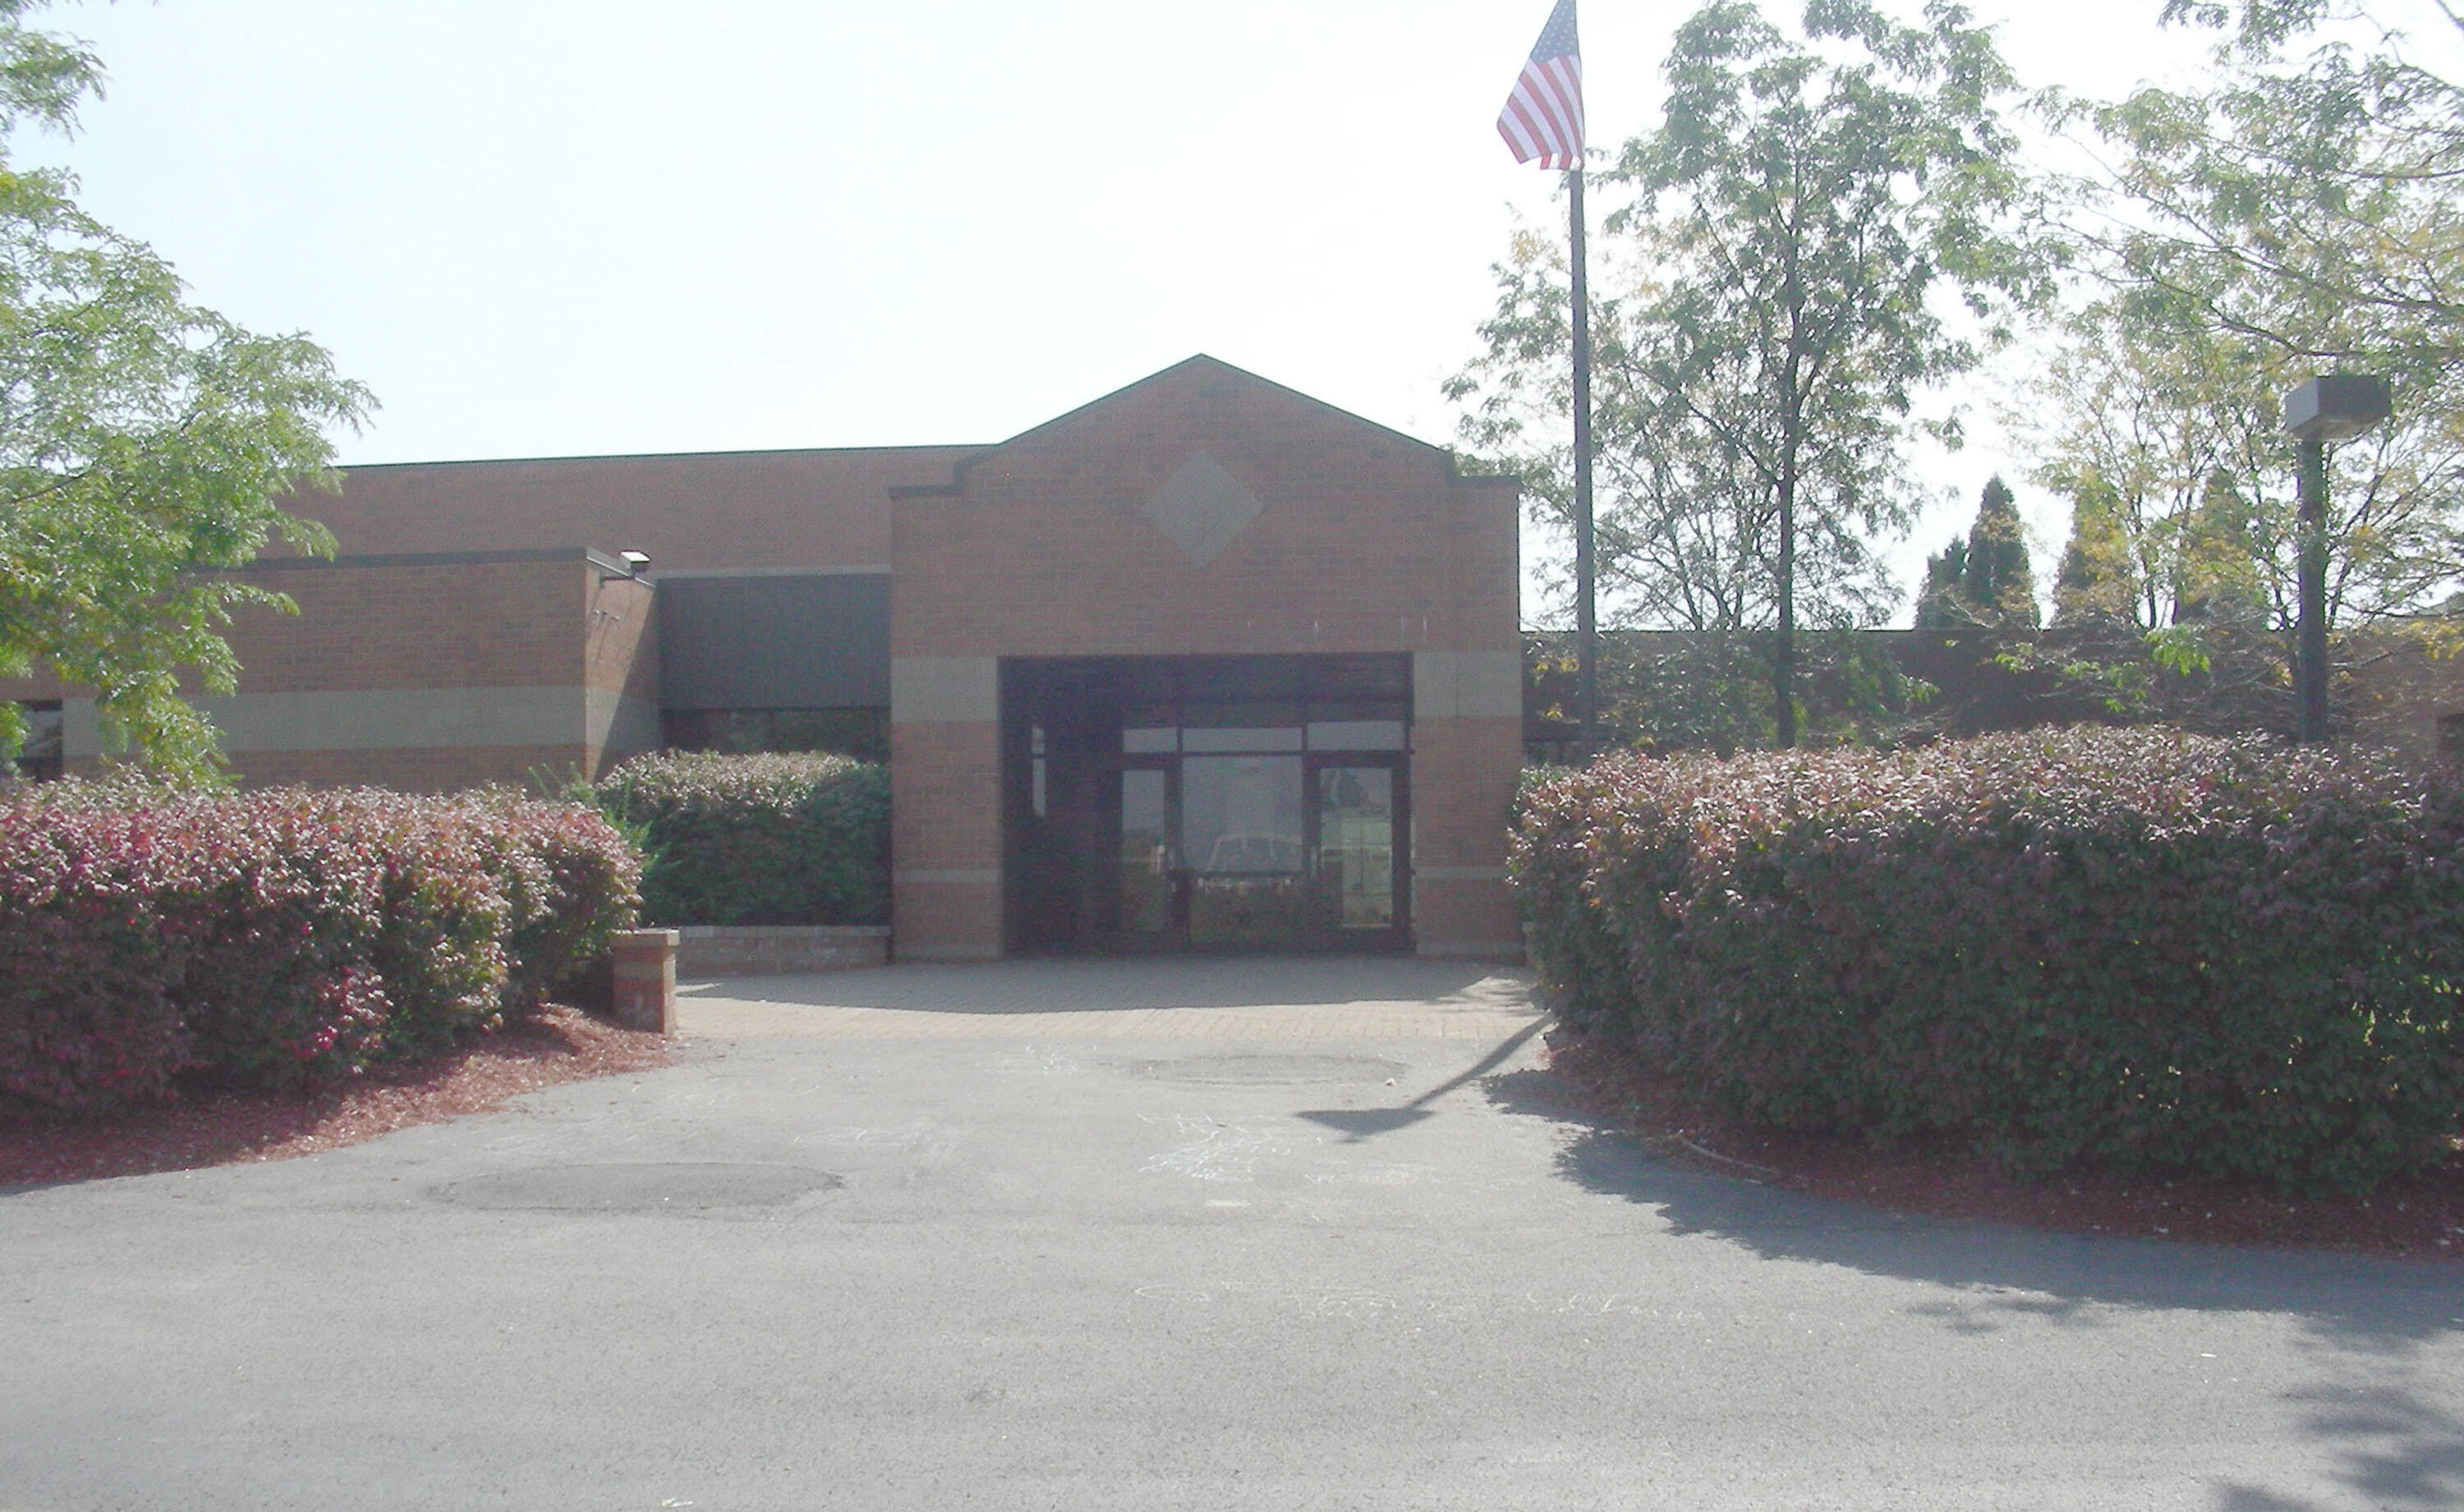 Willow Field Elementary